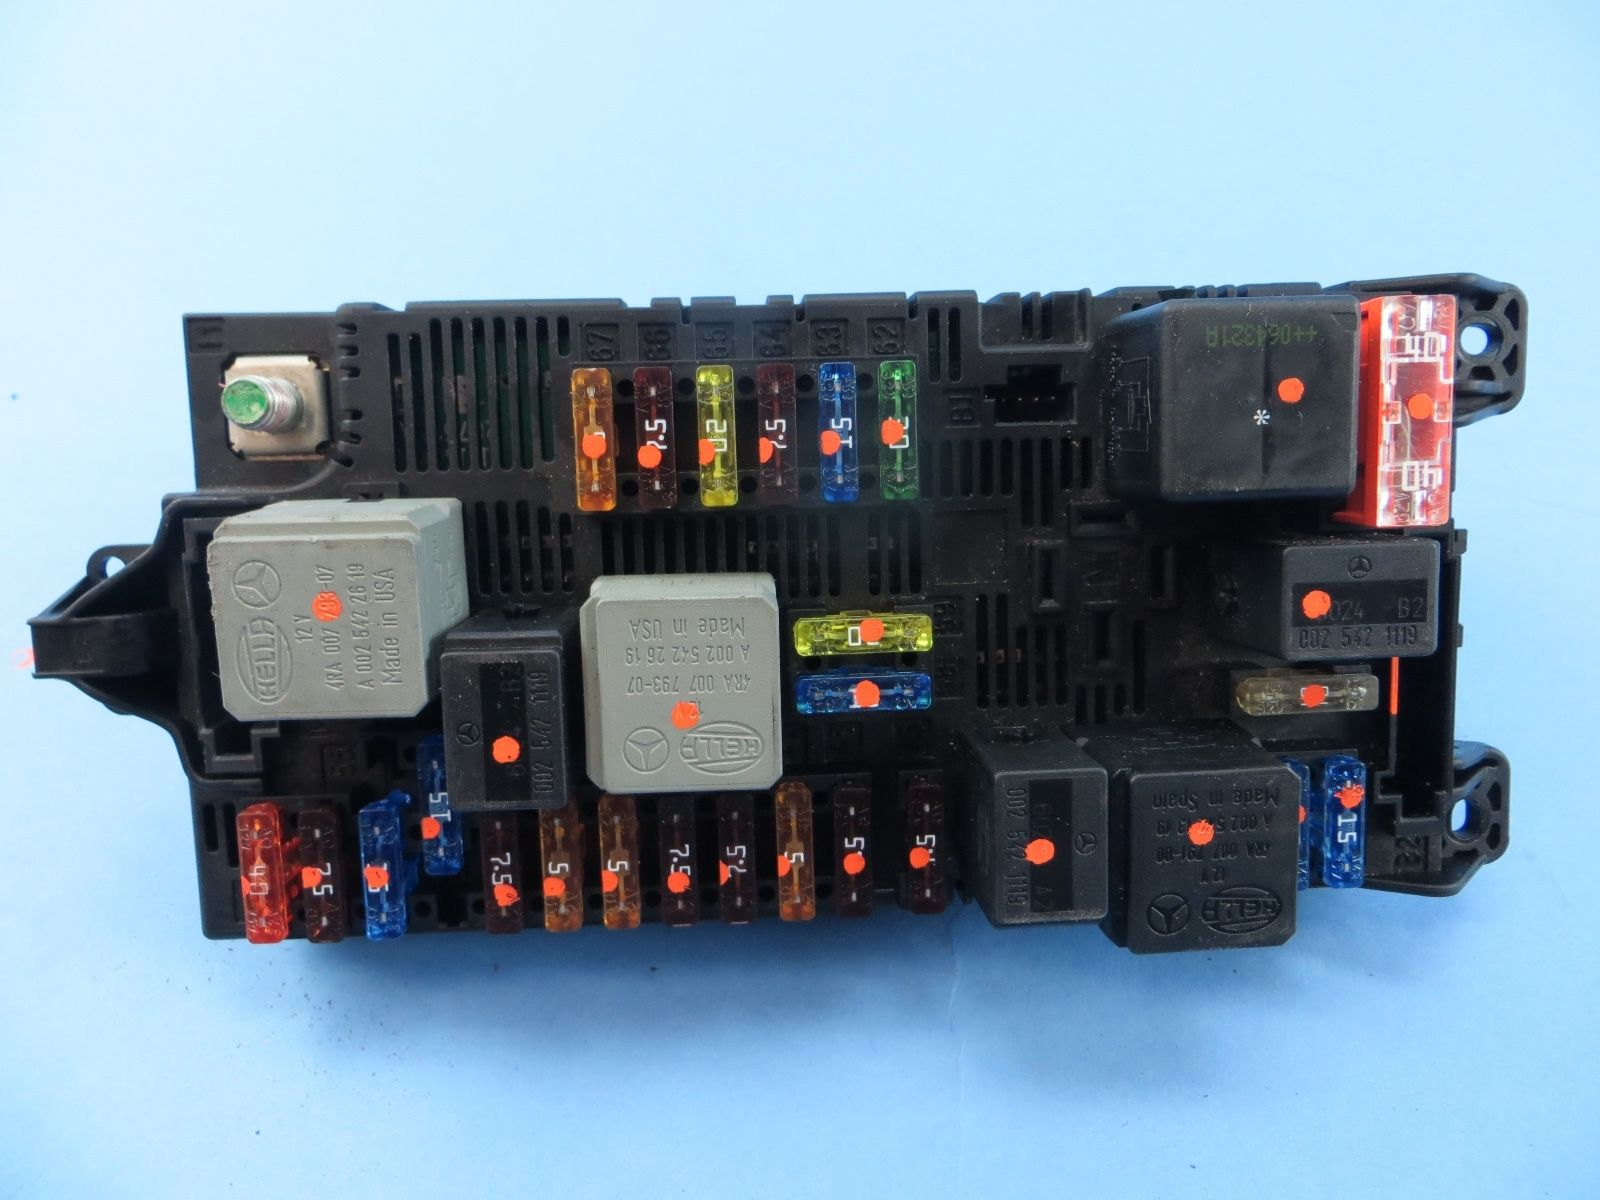 Mercedes Cls550 Fuse Box Diagram 32 Wiring Images Of 2007 C230 A38e1804 62f3 4299 B085 Fd96ff7256fd U2022 Indy500